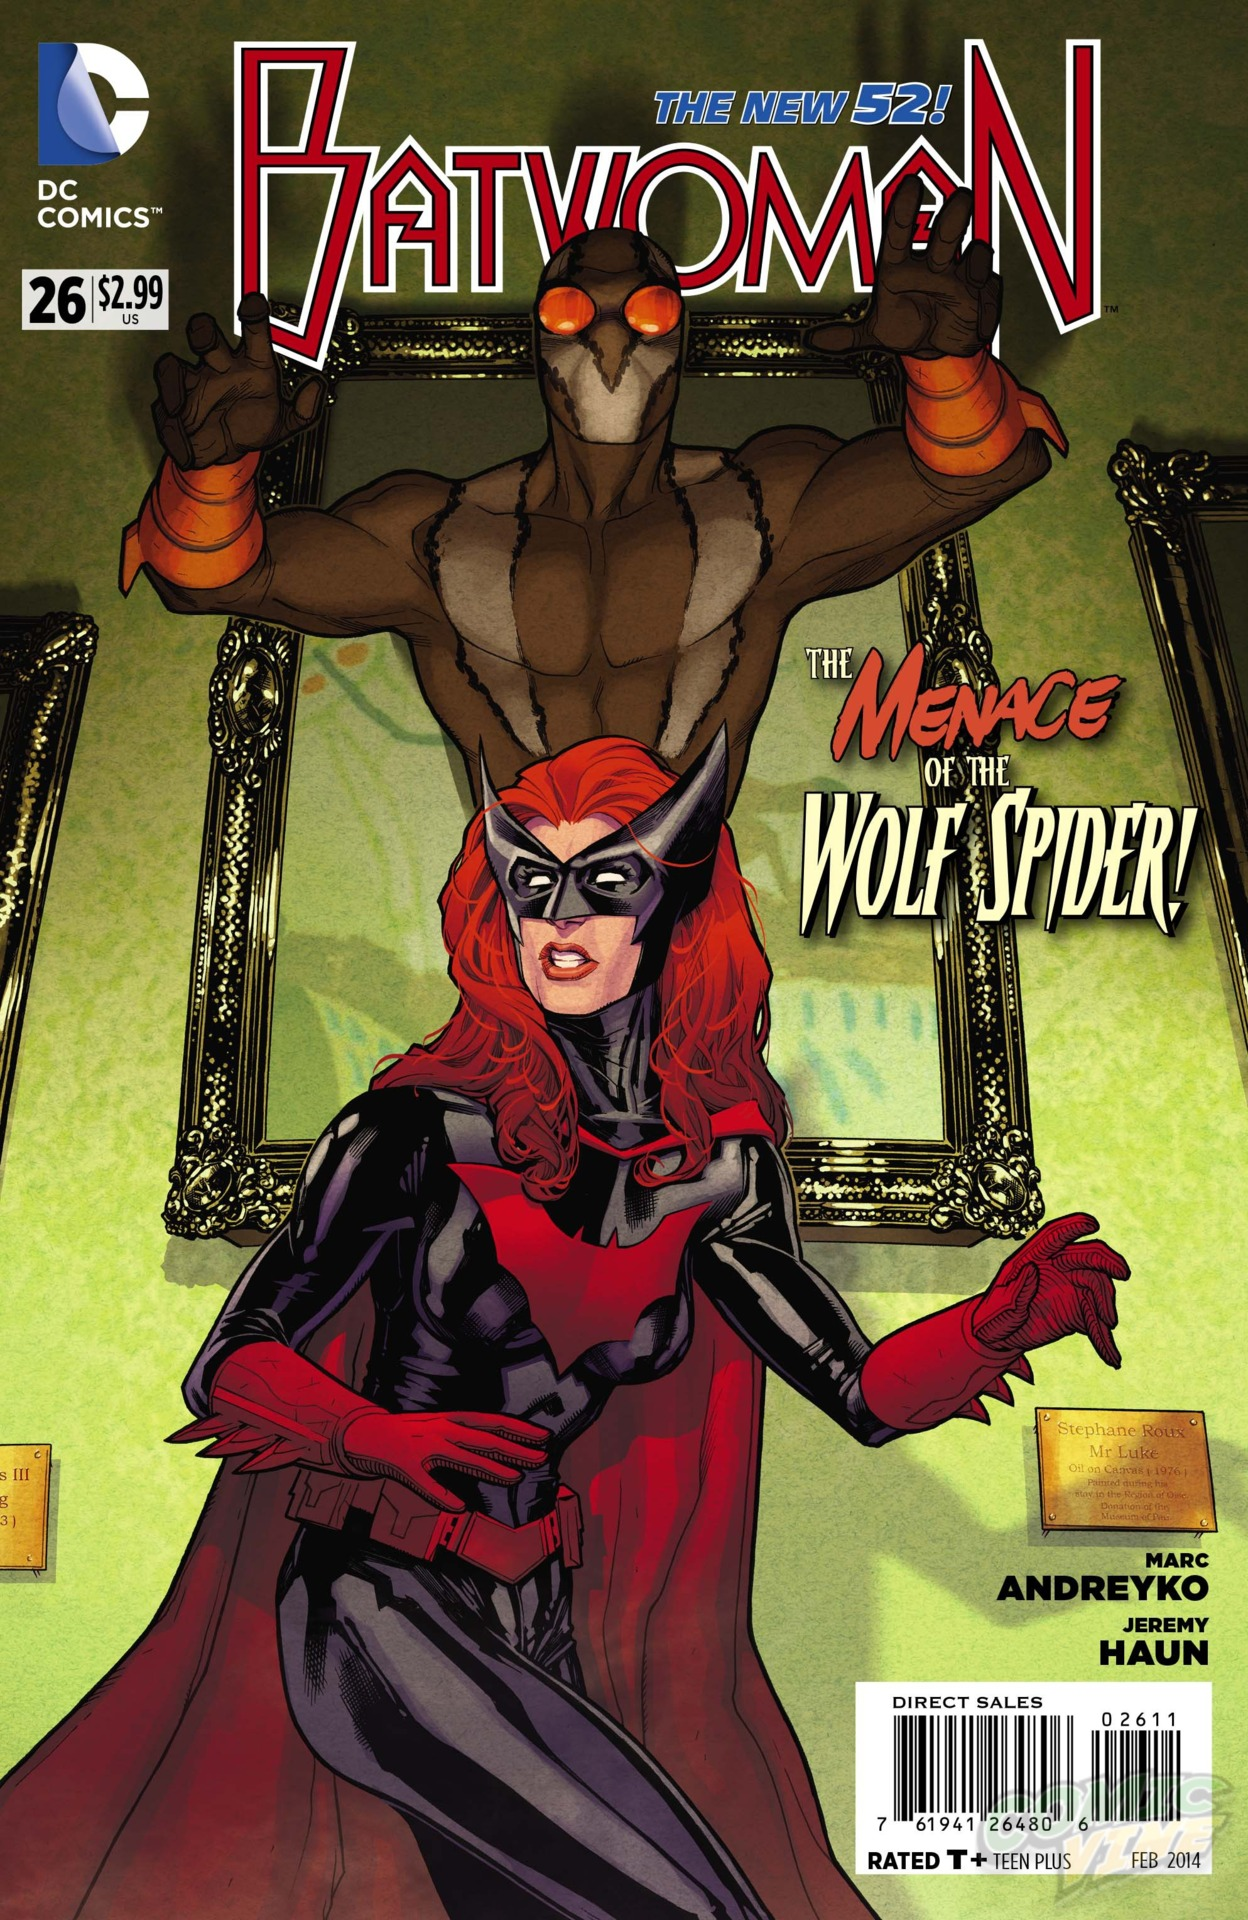 BATWOMAN #26 review